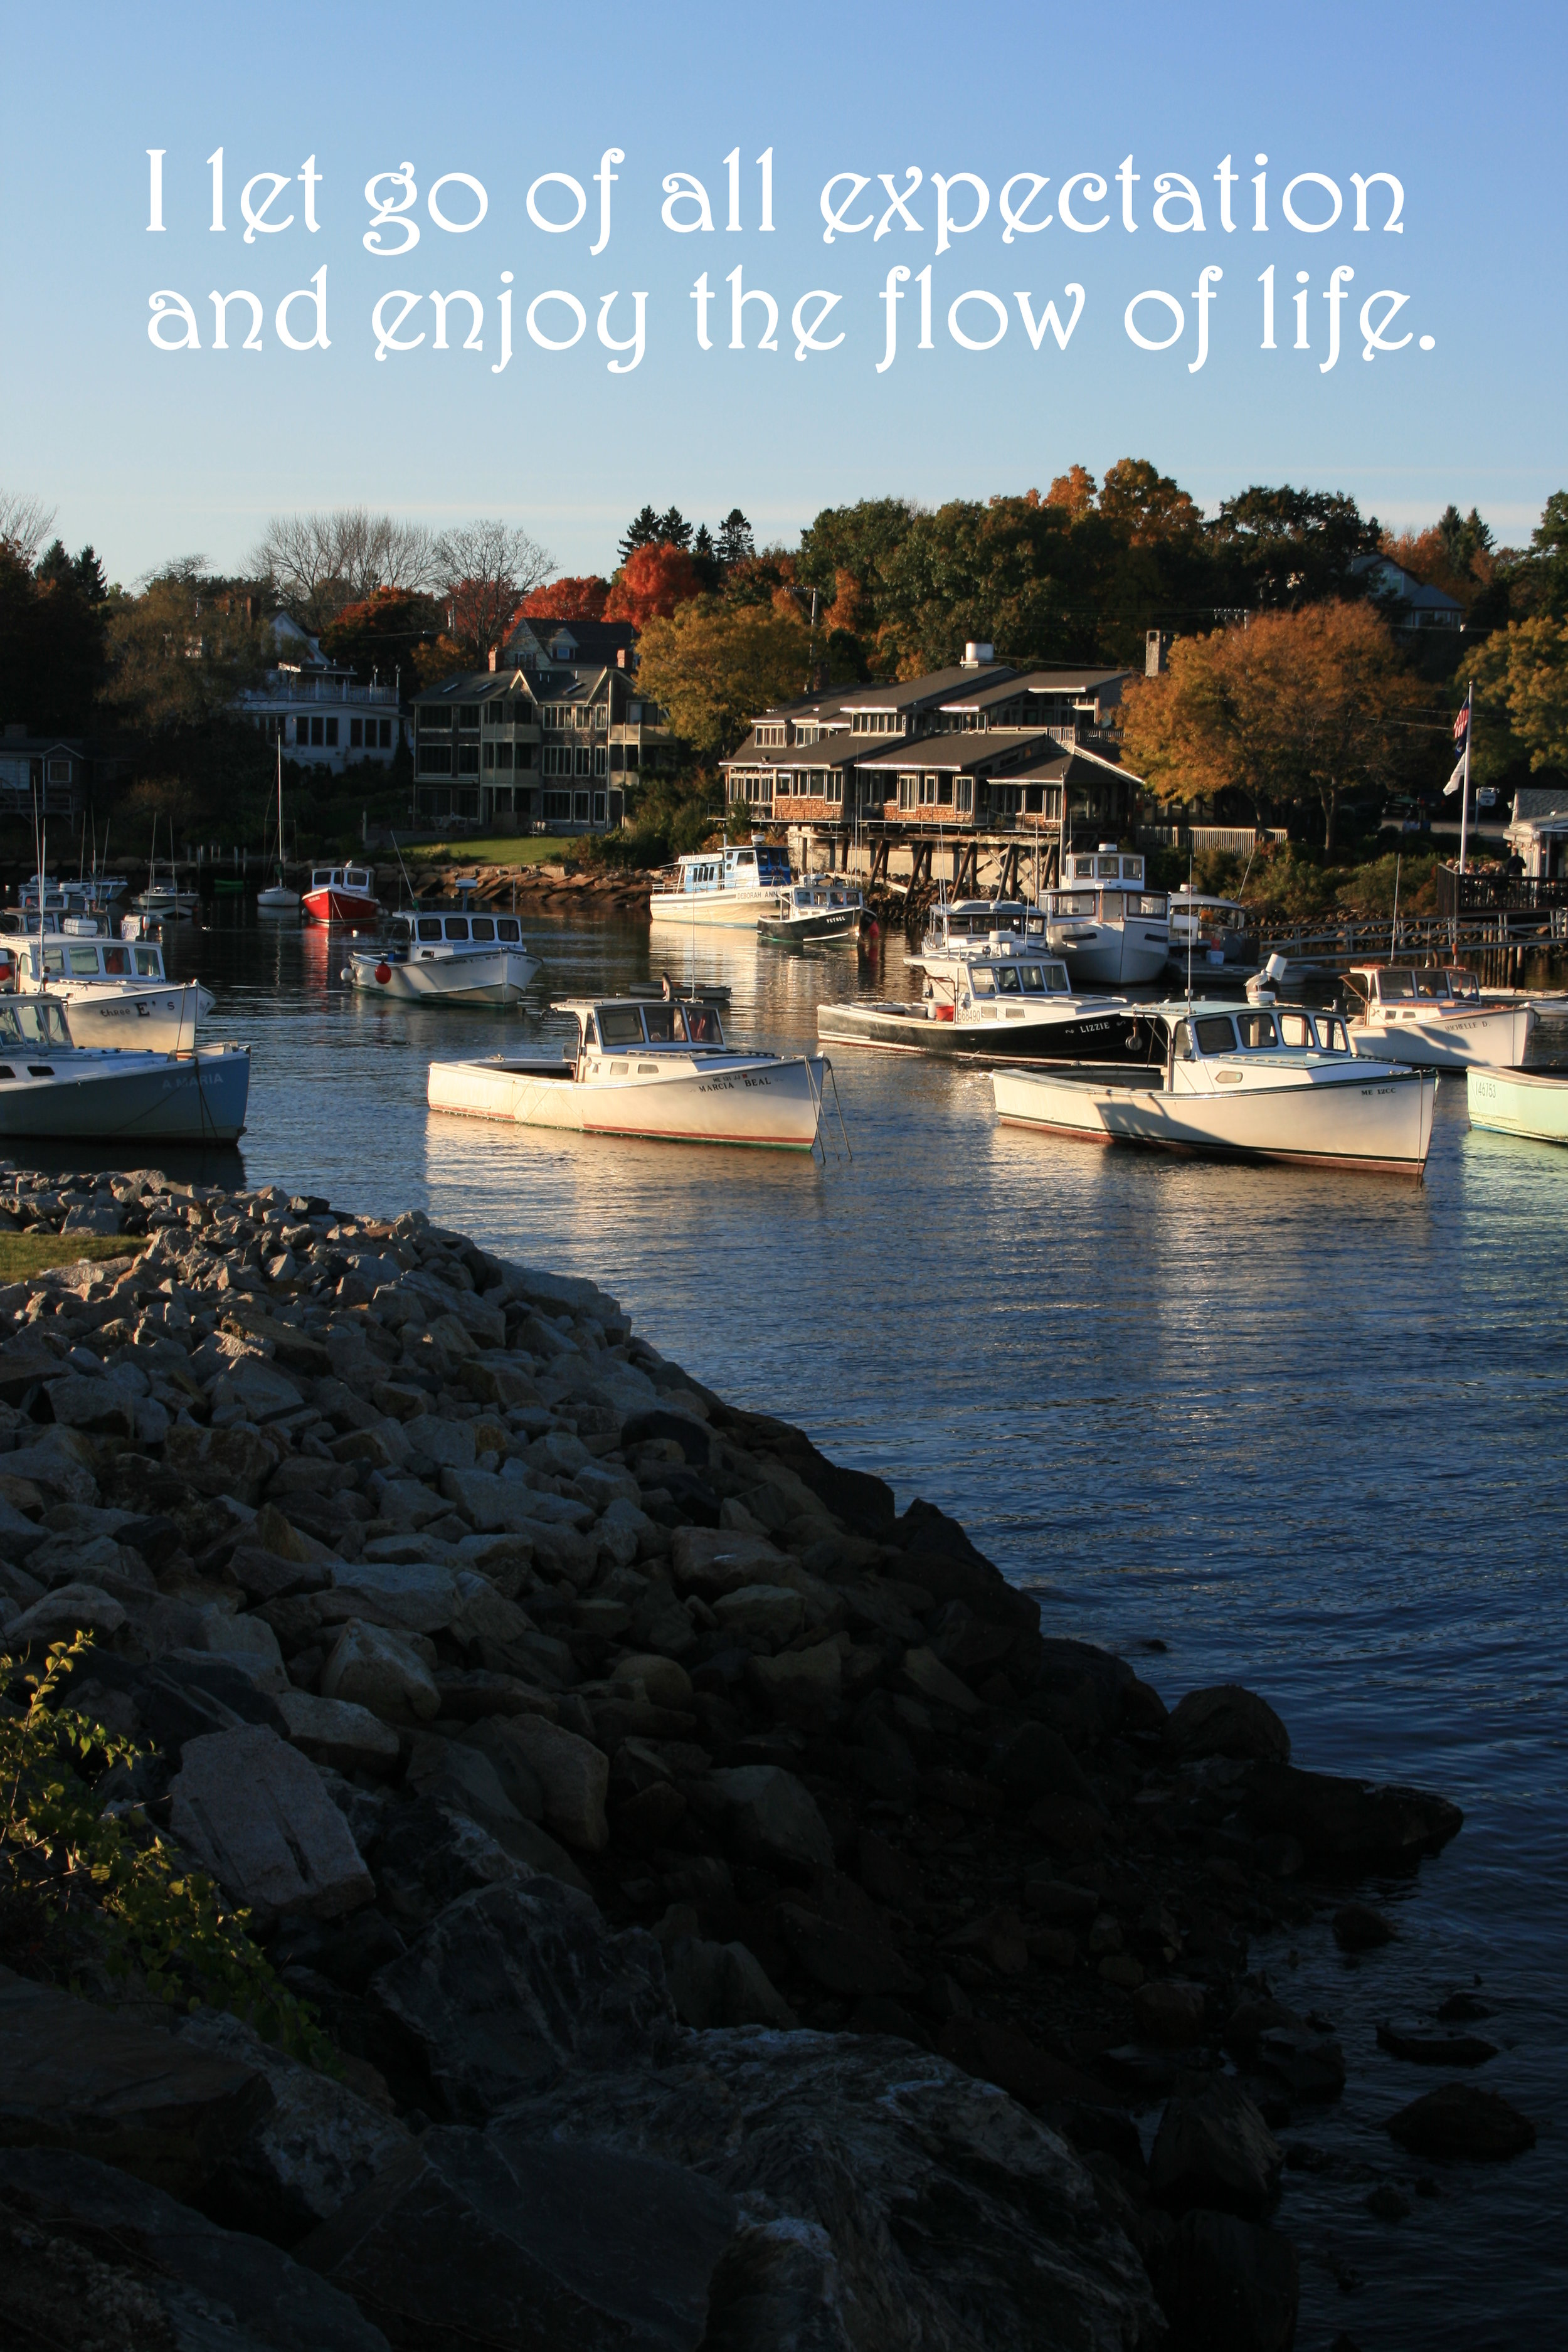 Perkins Cove Boats and Rocks_let go of expectation.jpg